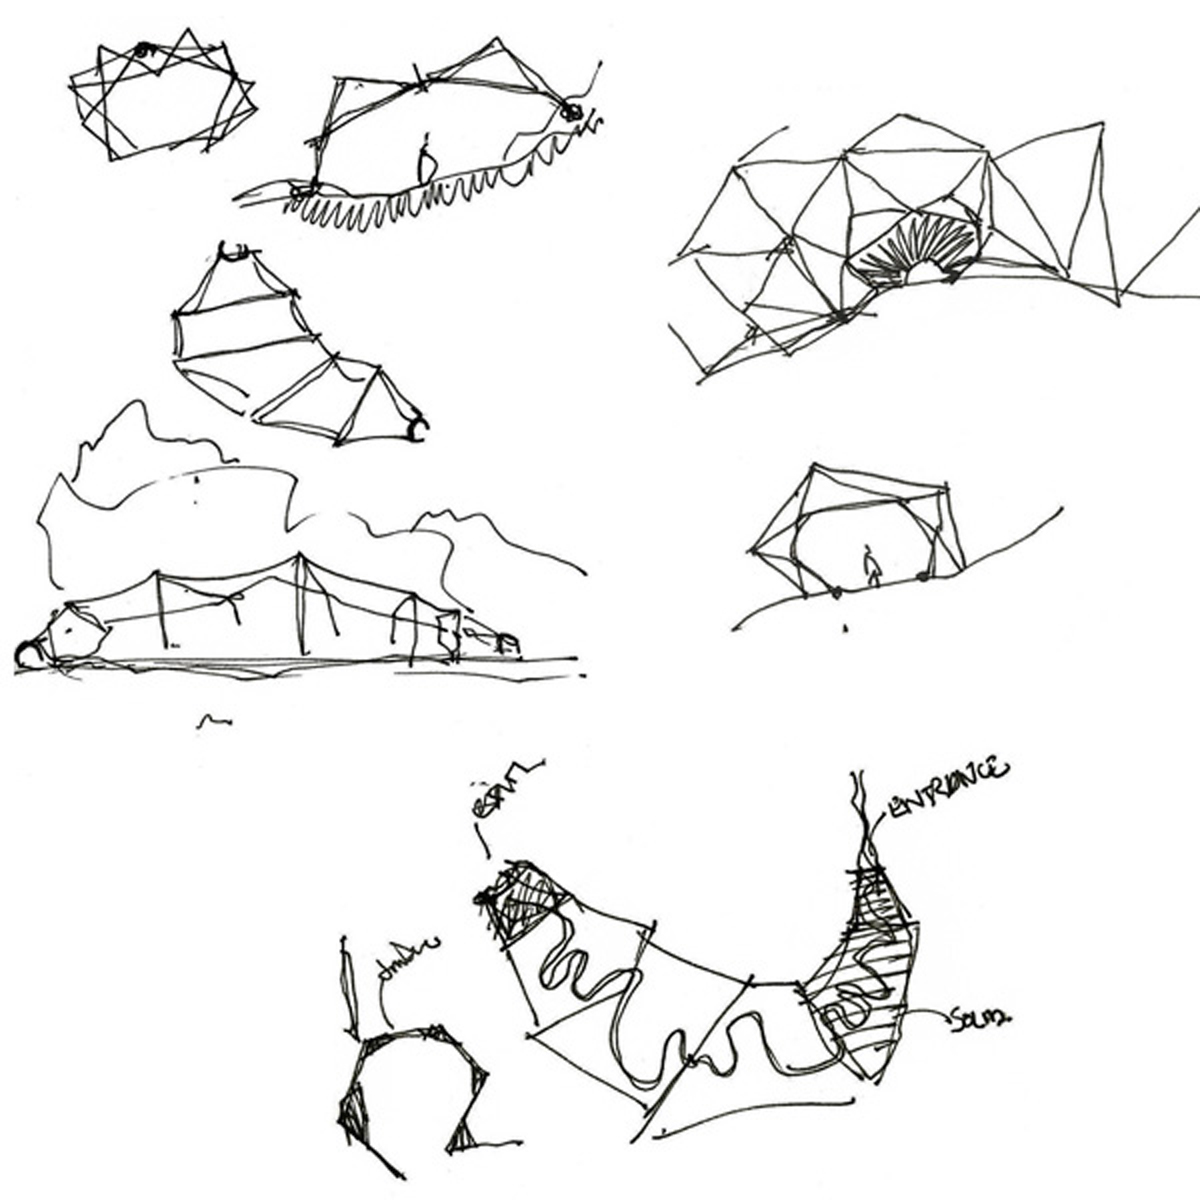 Sketches of enclosures at Sikkim Butterfly Reserve